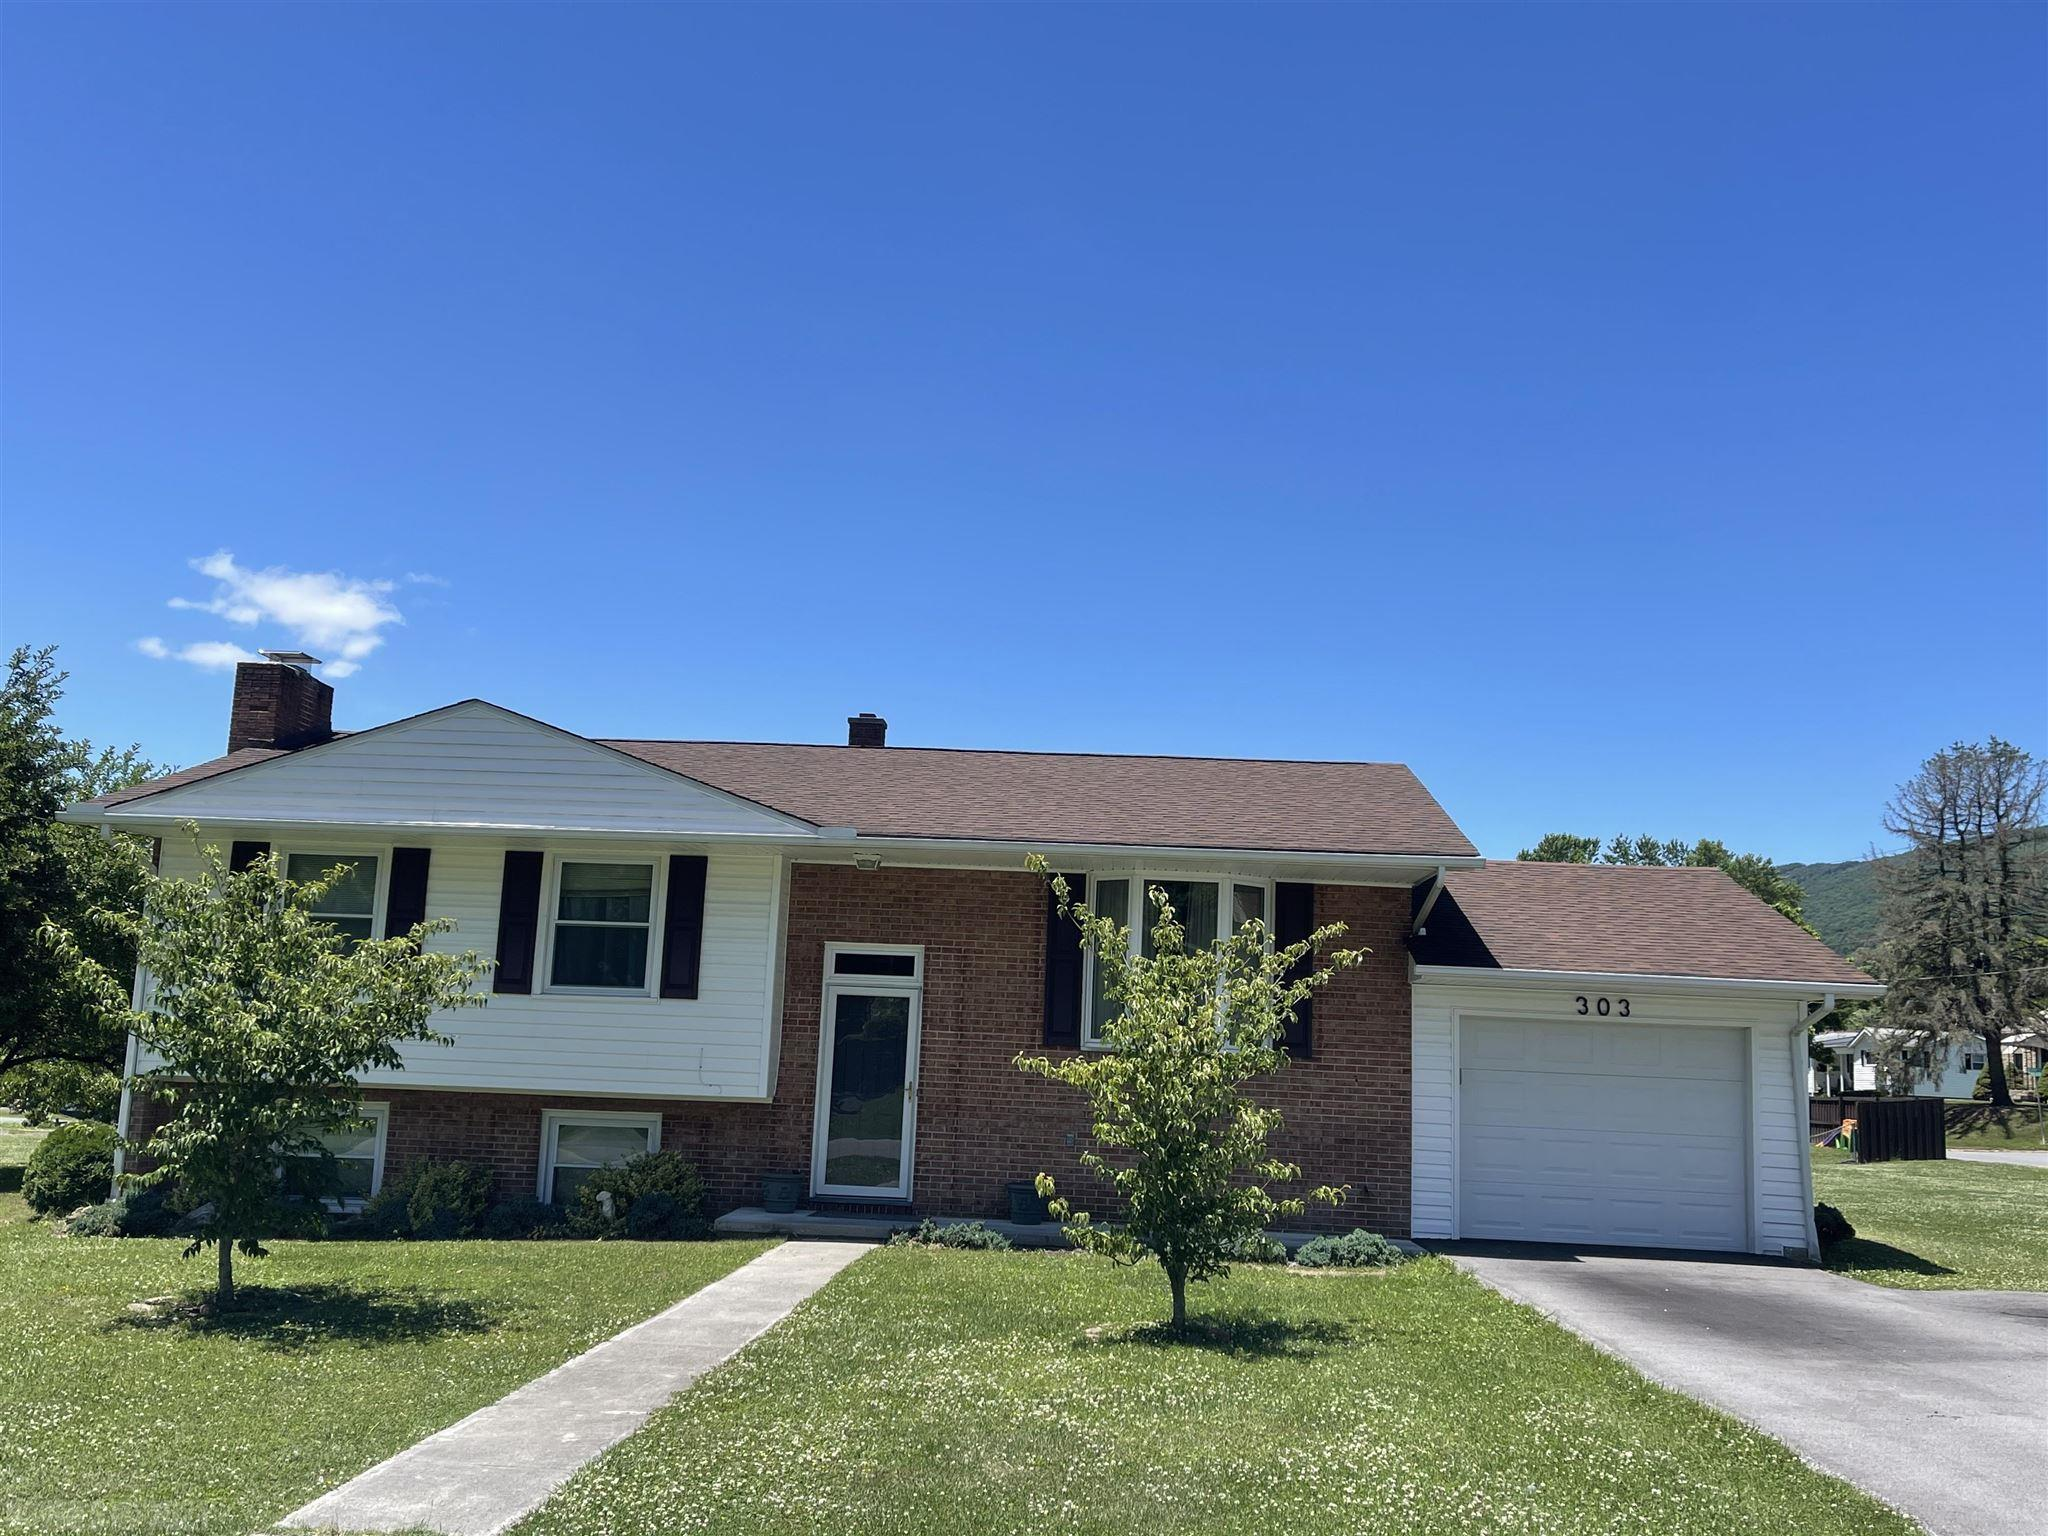 Family ready home! Newer roof, windows, vinyl siding and garage in 2011. Large screened in deck on back, large level yard in great location! A Must See!